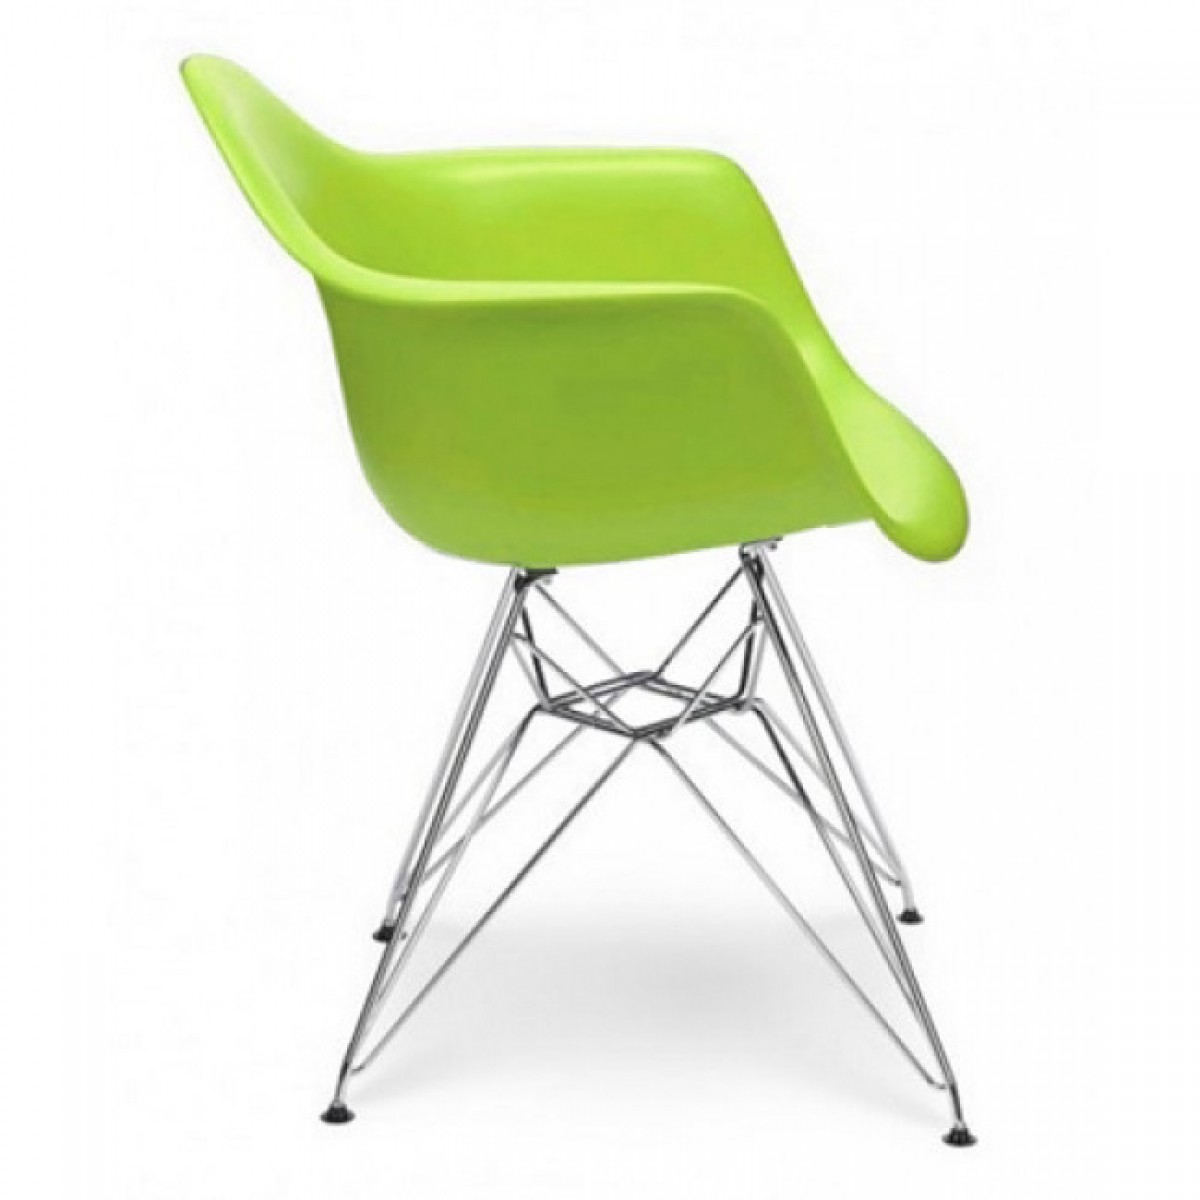 Eames style dar molded lime green plastic dining armchair for Chaise eiffel charles eames